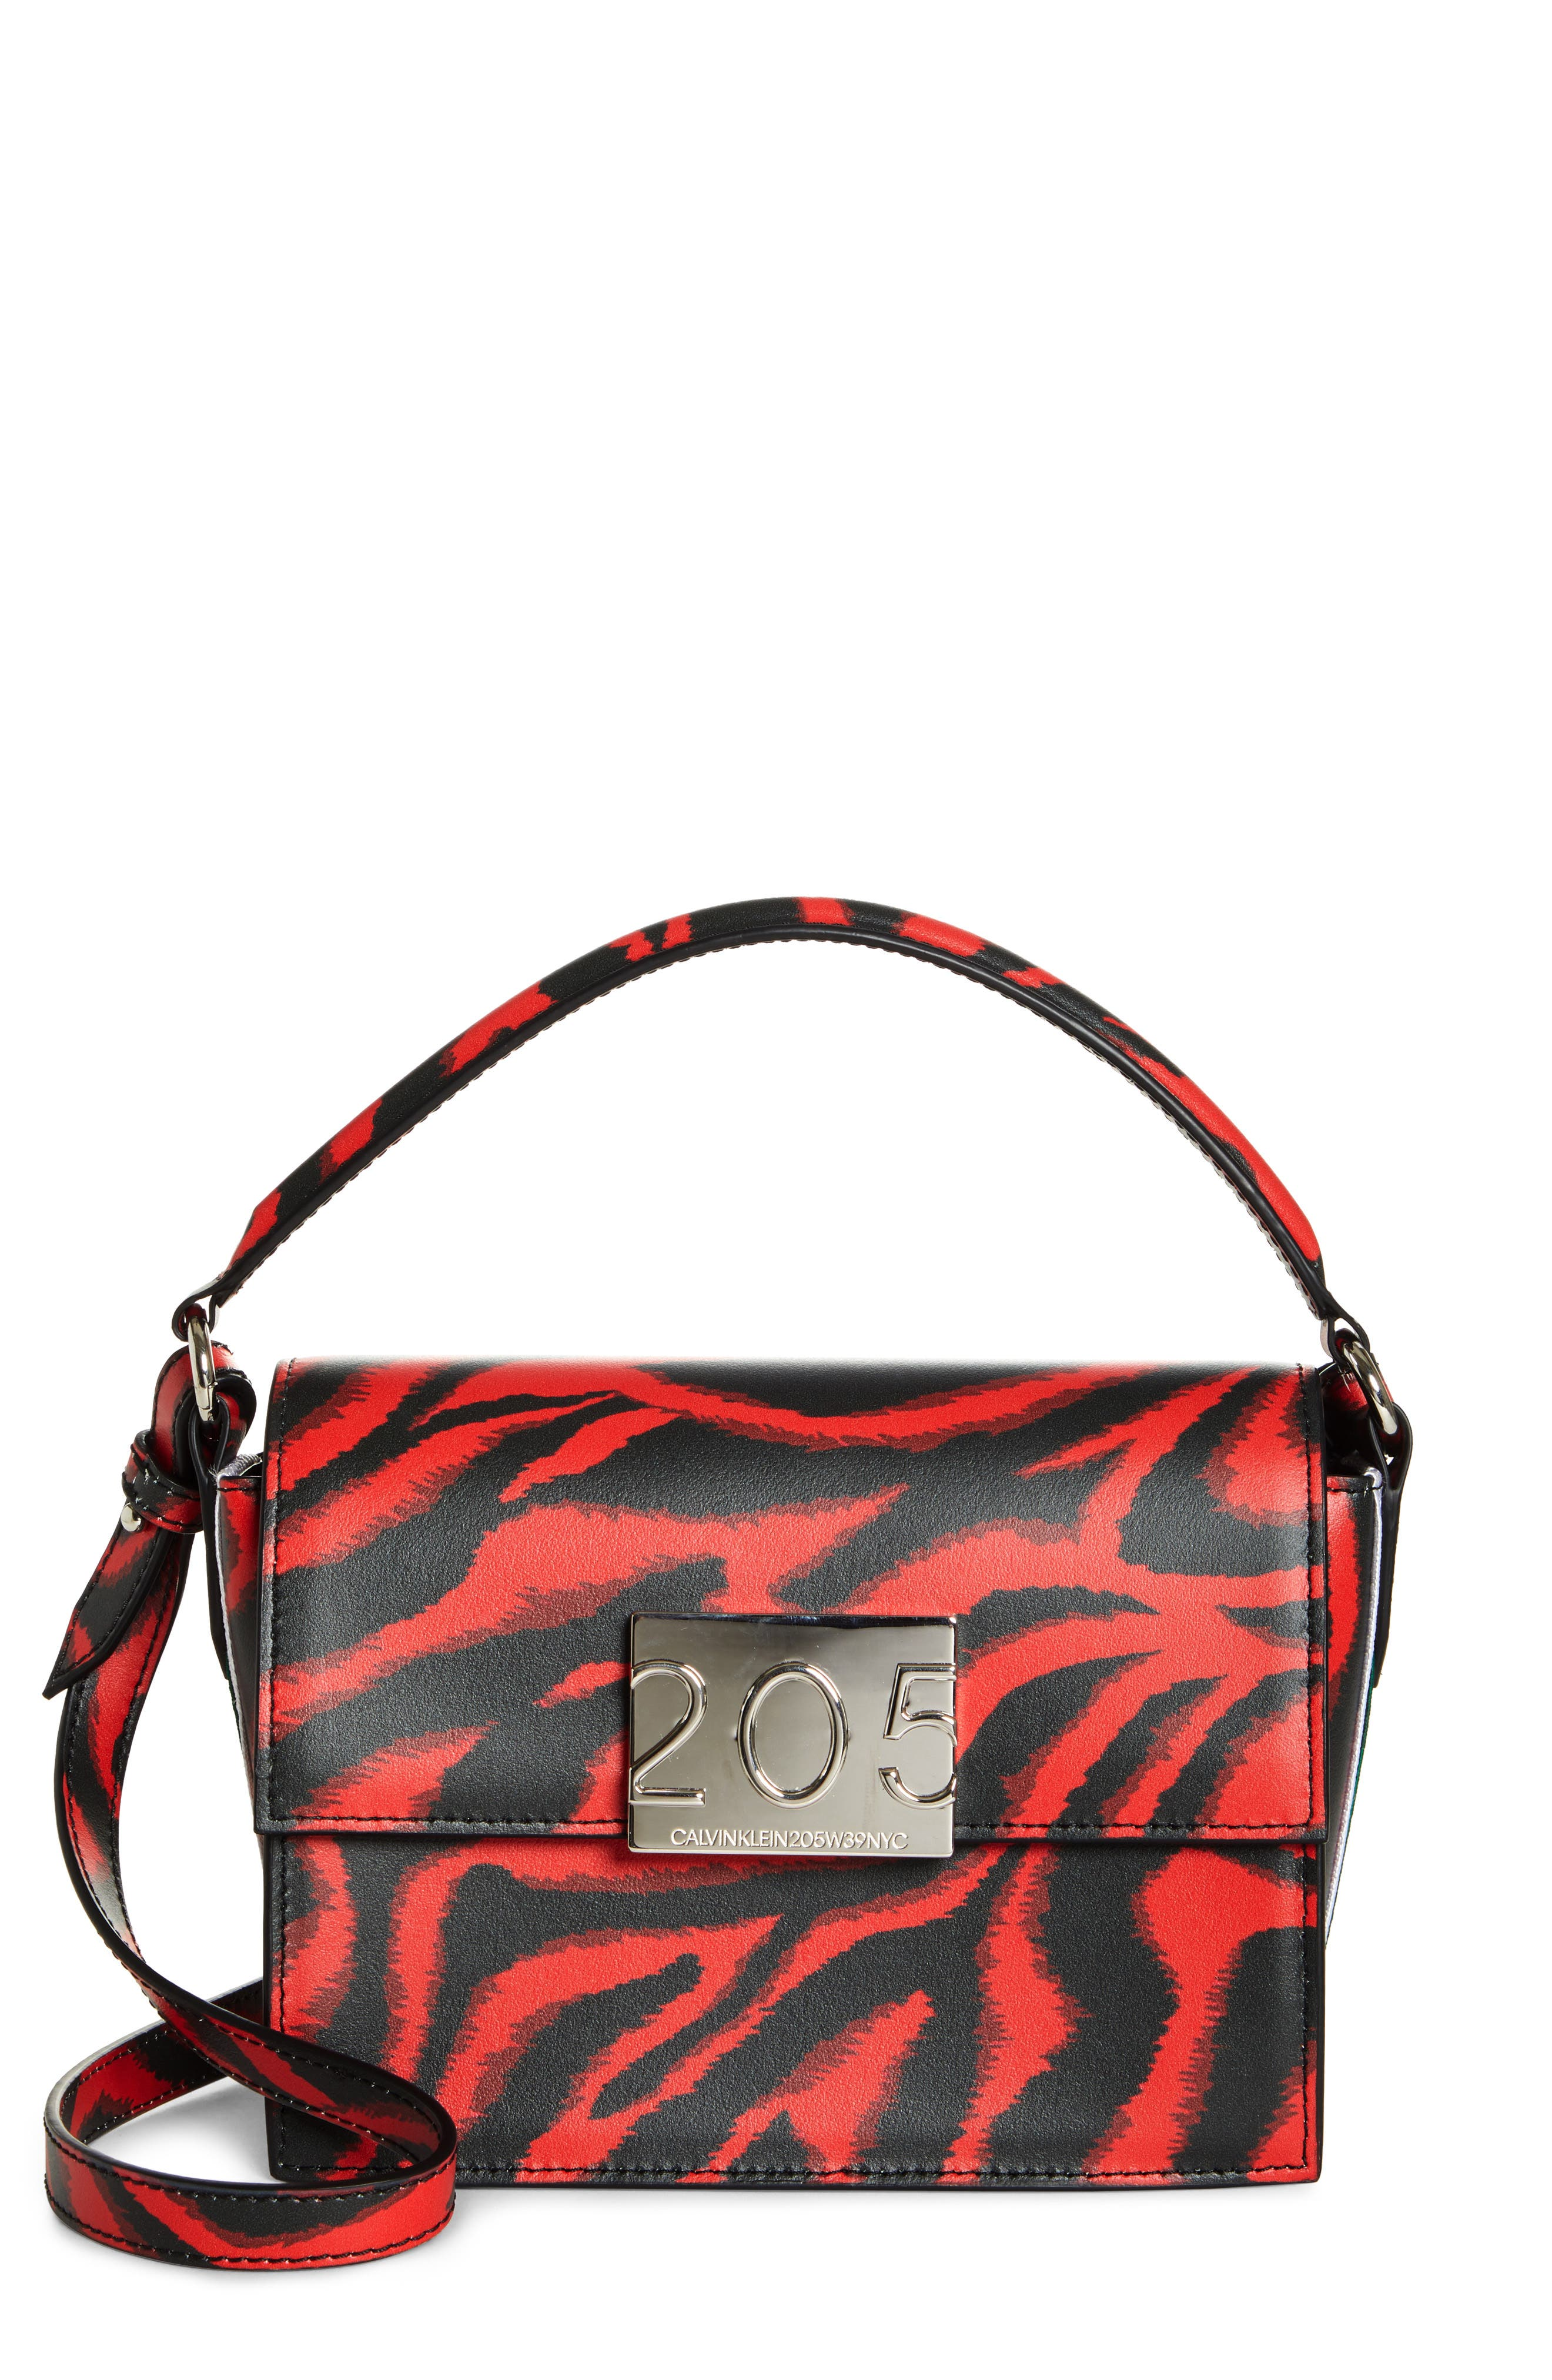 CALVIN KLEIN 205W39NYC Small Bonnie Top Handle Calfskin Shoulder Bag, Main, color, RED ZEBRA